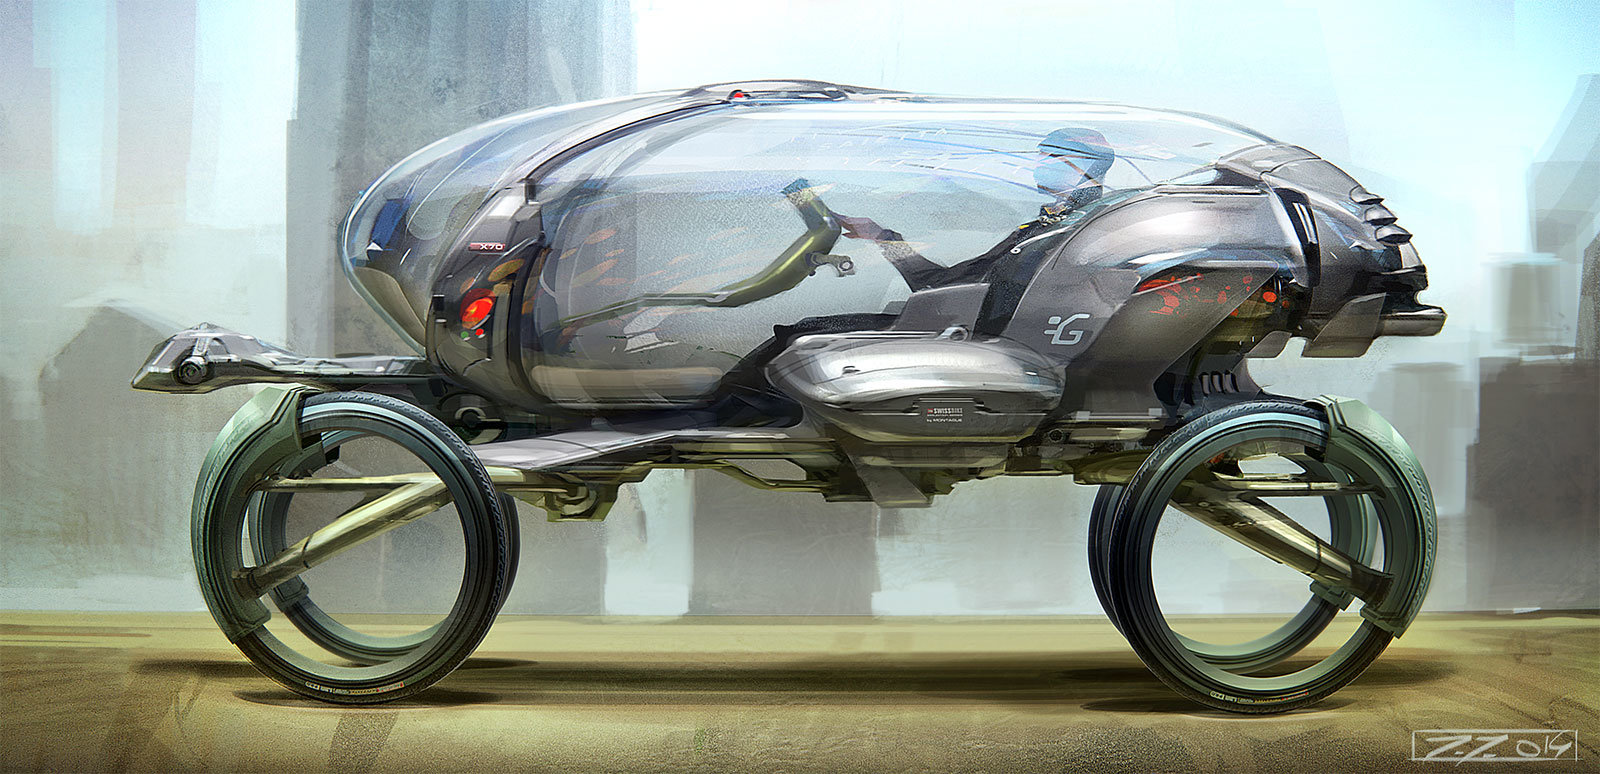 Jakub javora vehicle sketch